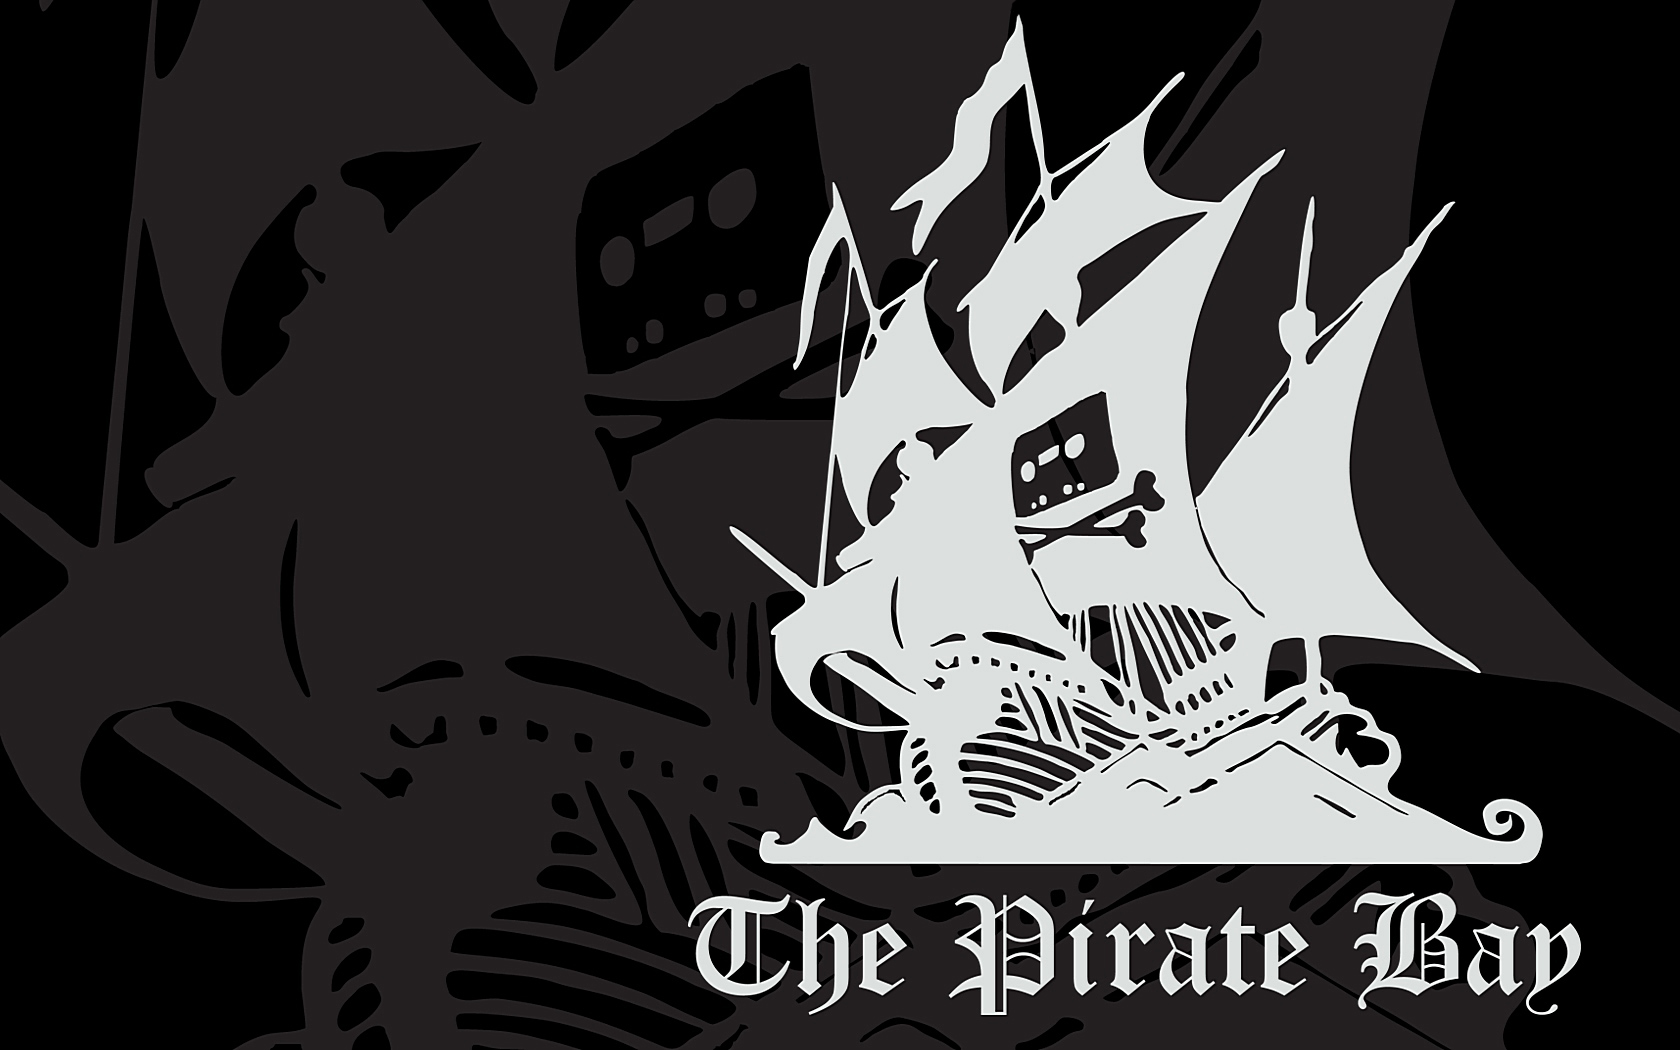 Cofundador do 'Pirate Bay' é preso na Tailândia